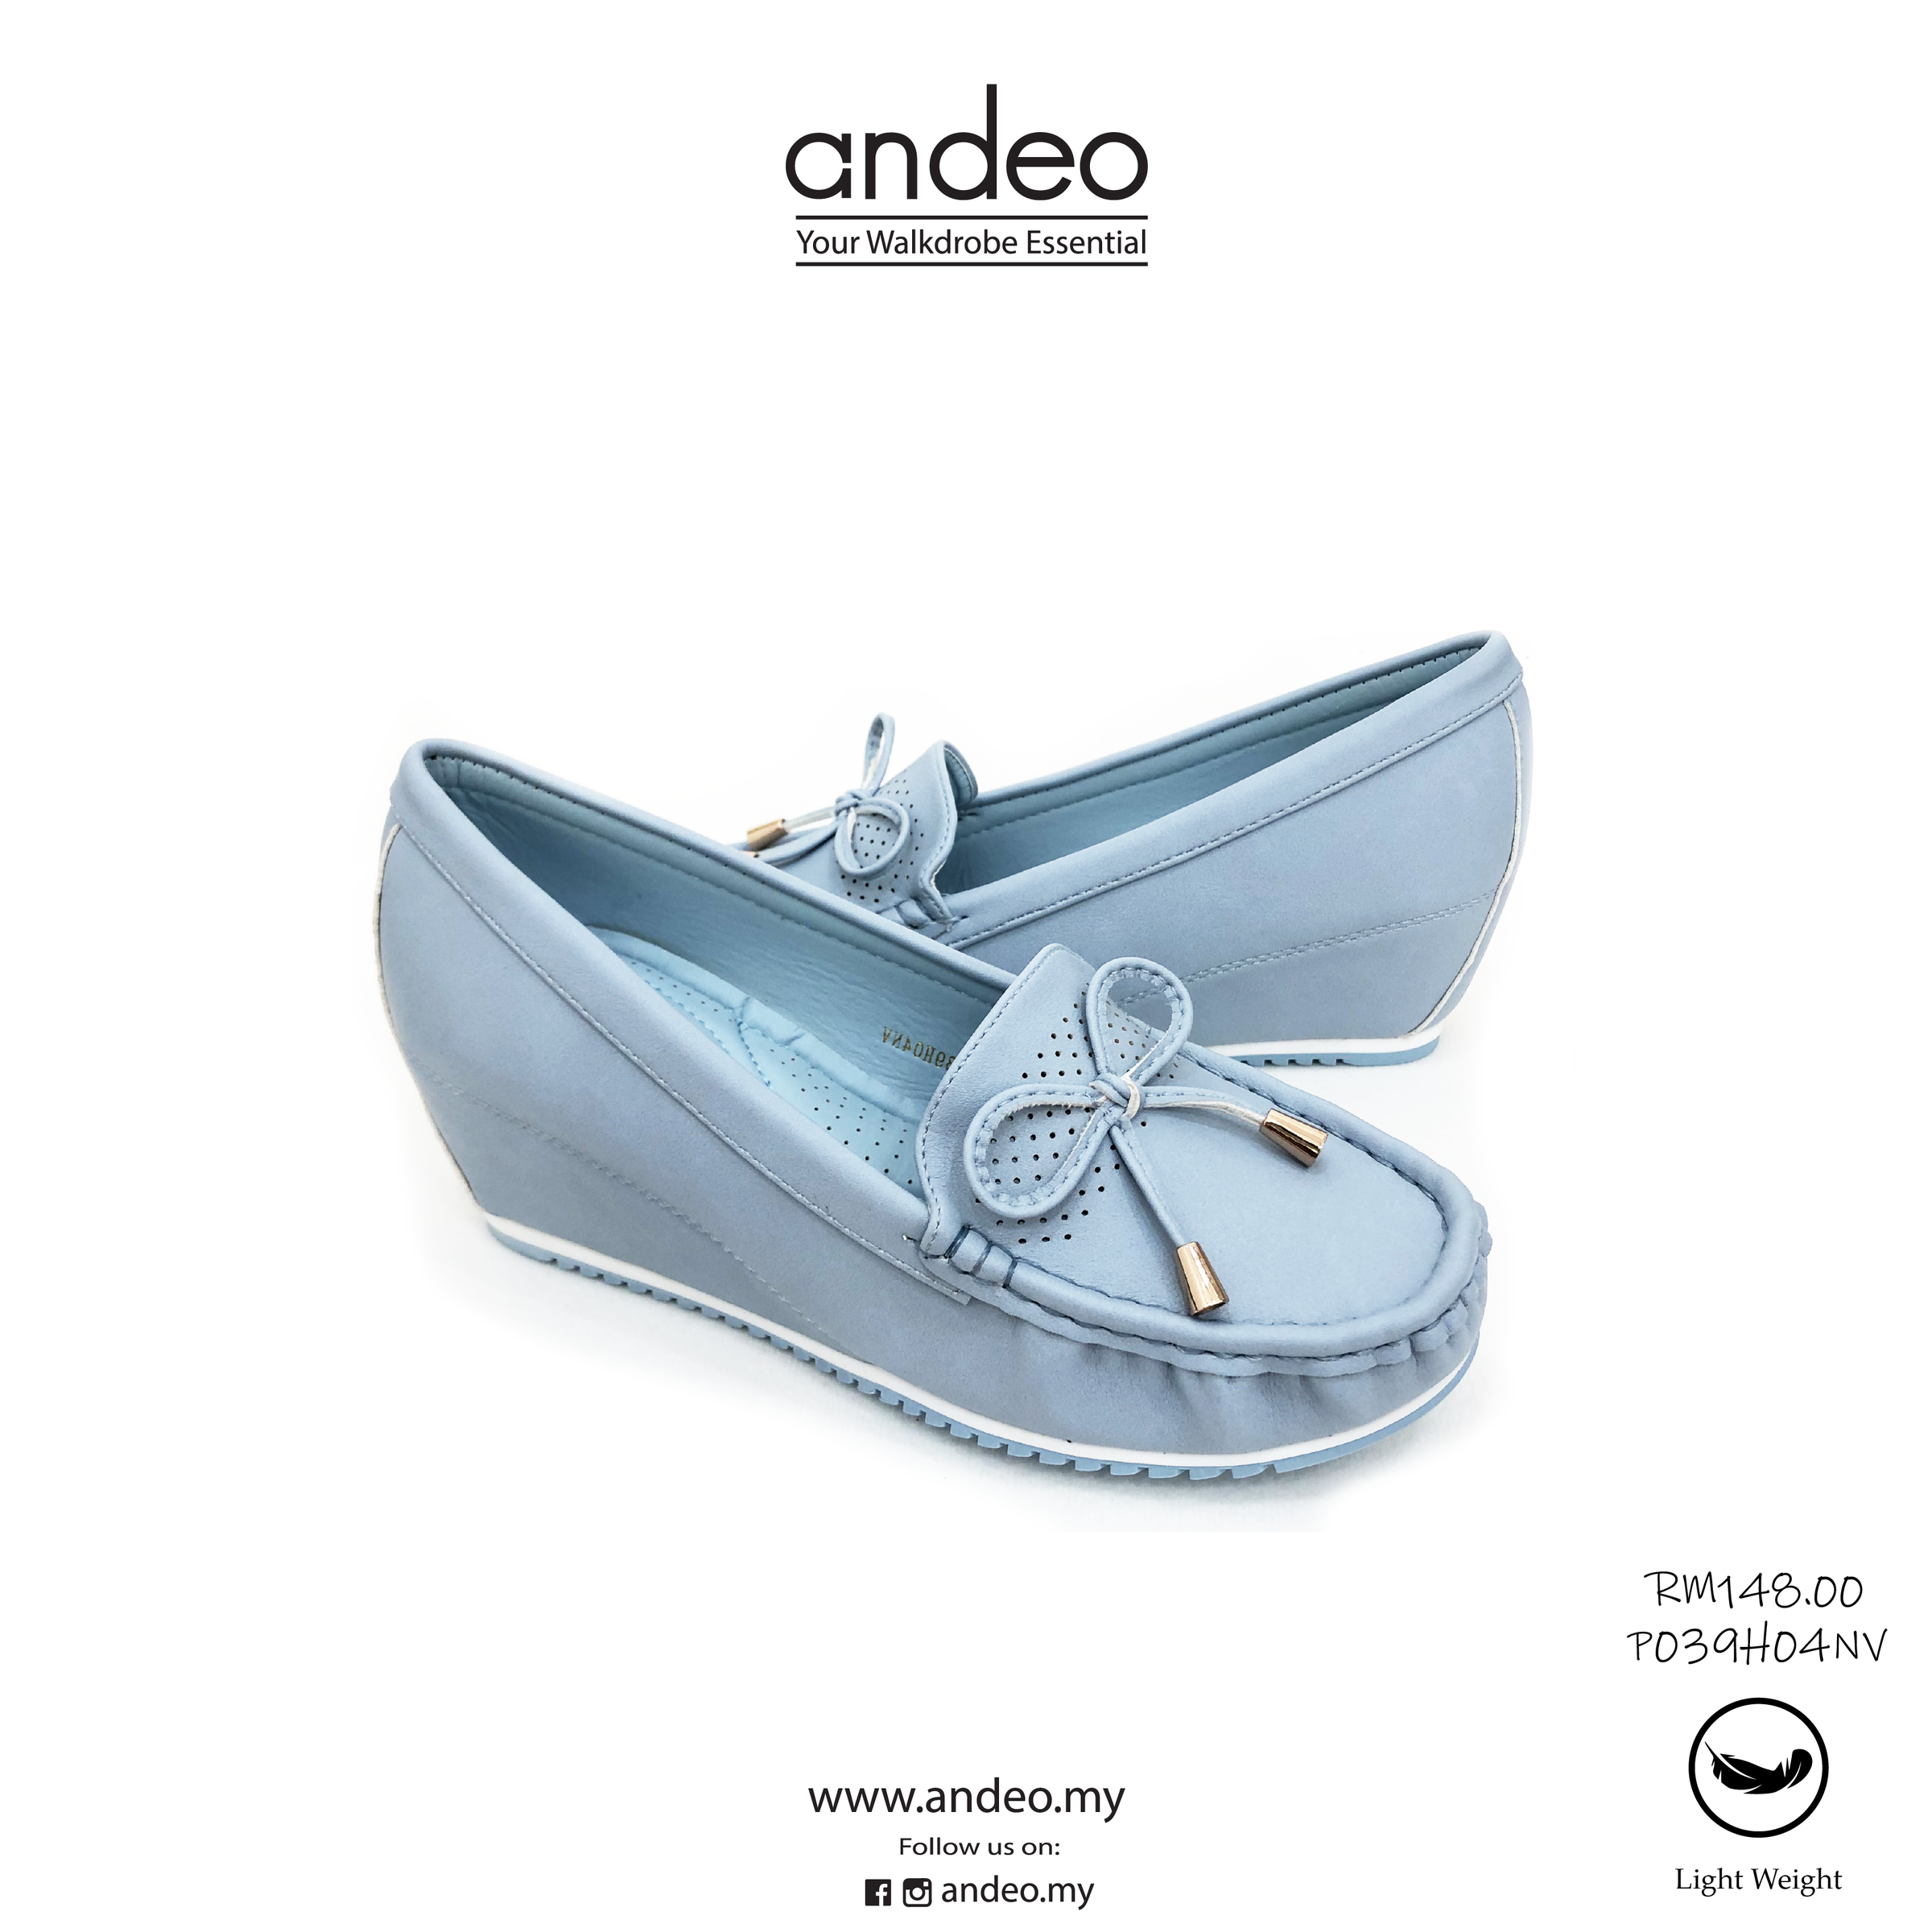 ANDEO FB PRODUCT P039H04-09.png